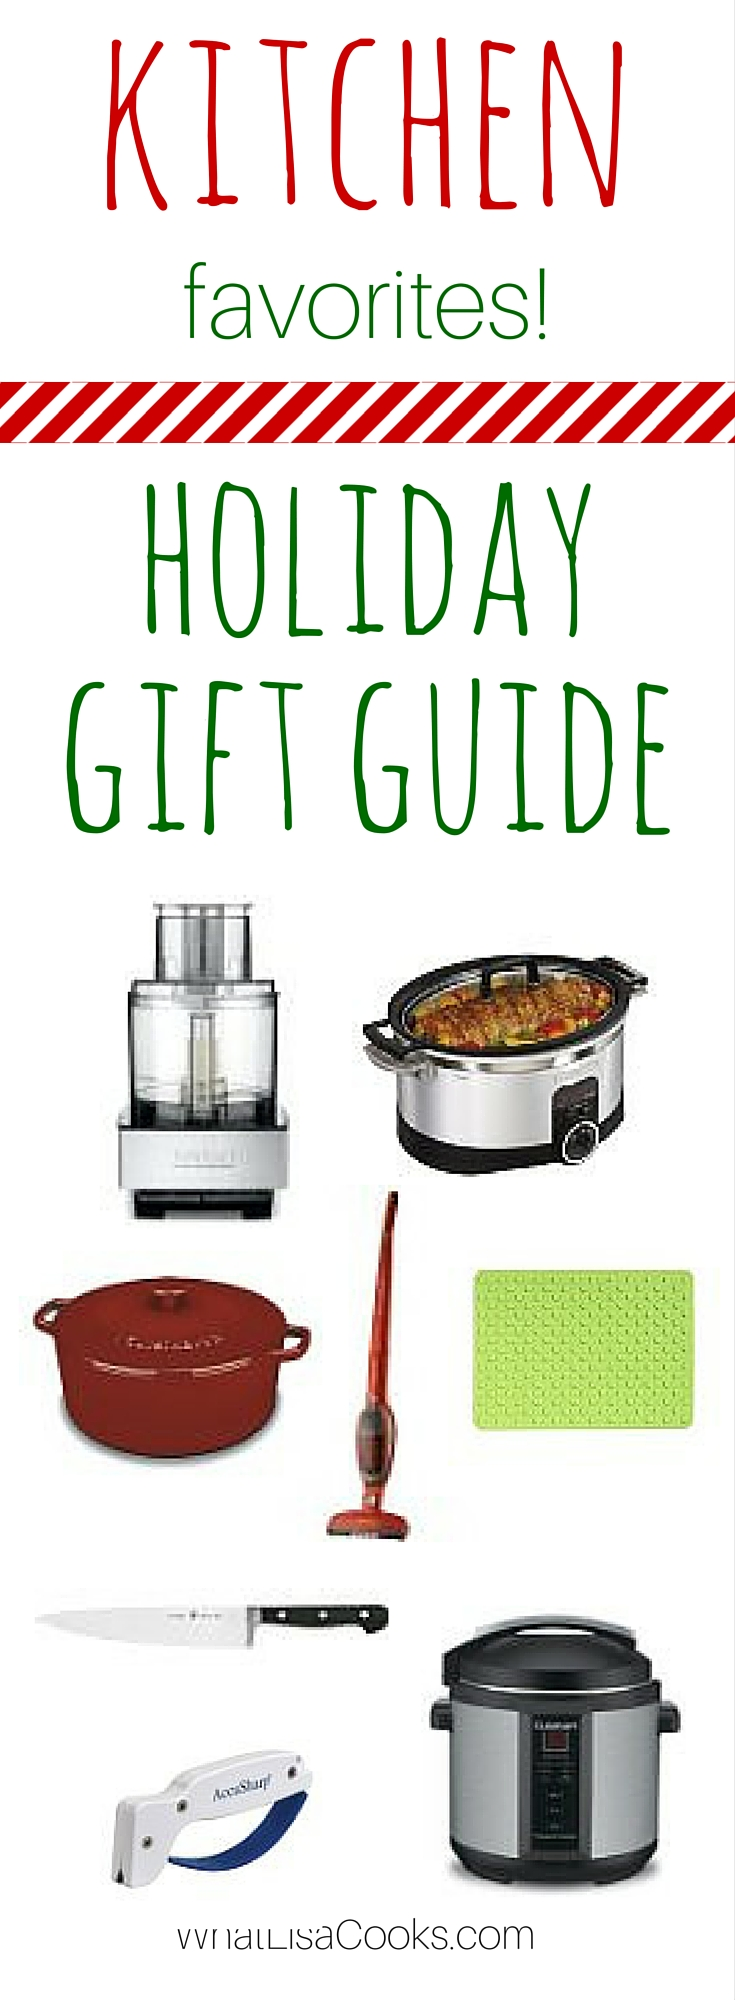 What you need on your wish list this holiday - from WhatLisaCooks